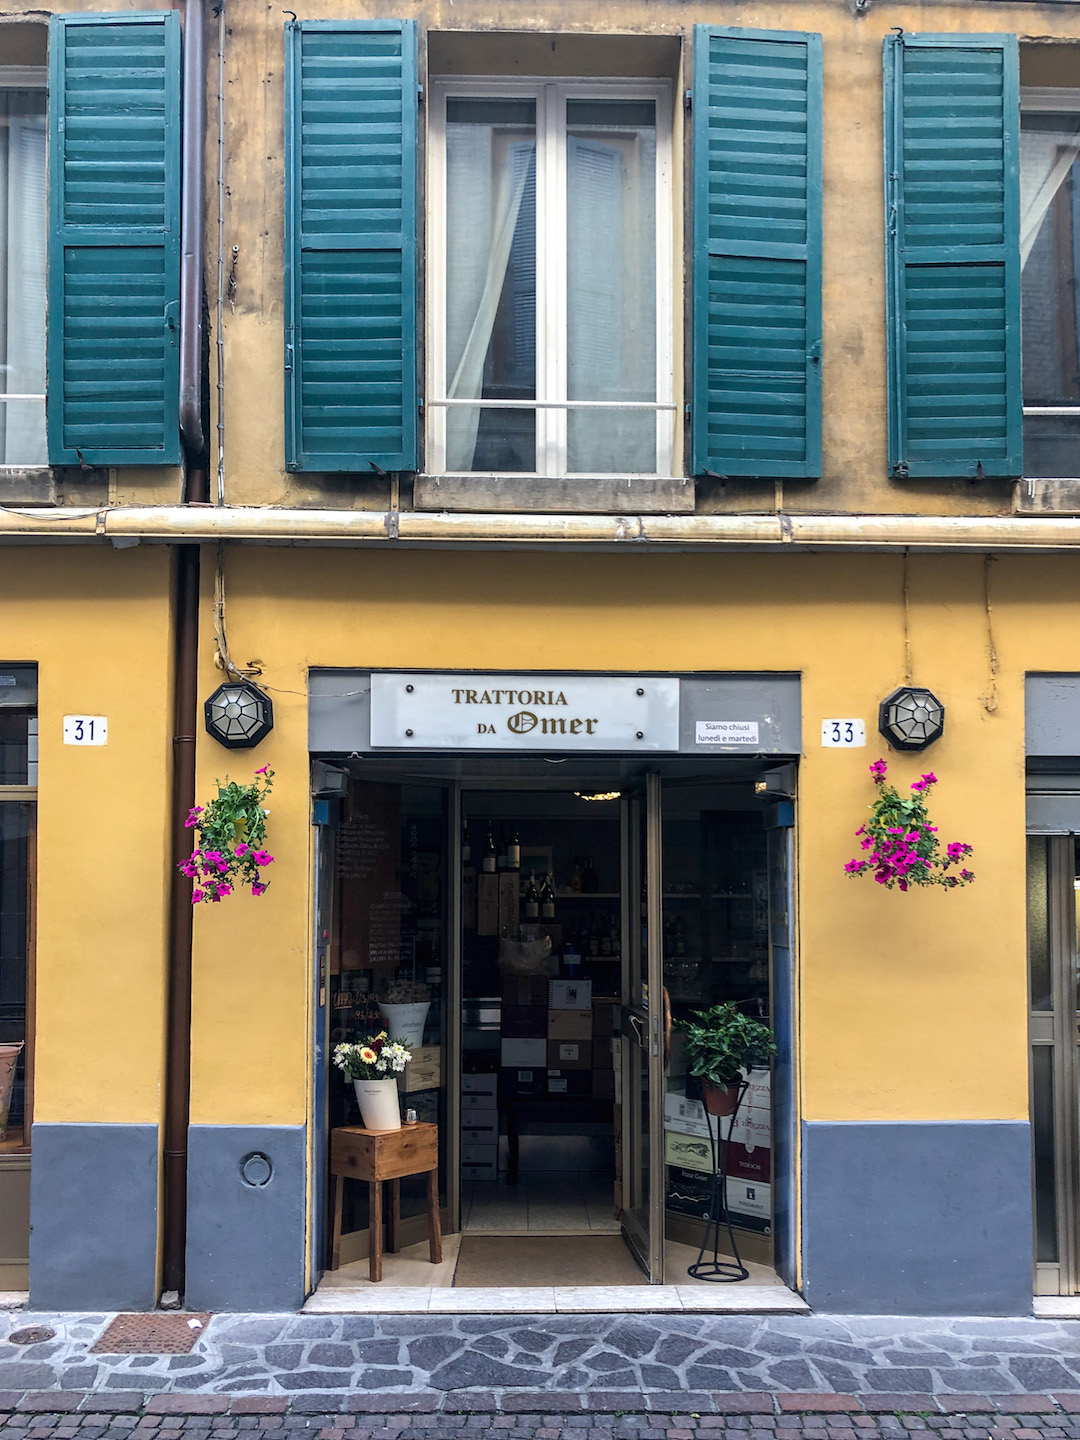 A Cute Restaurant in Modena